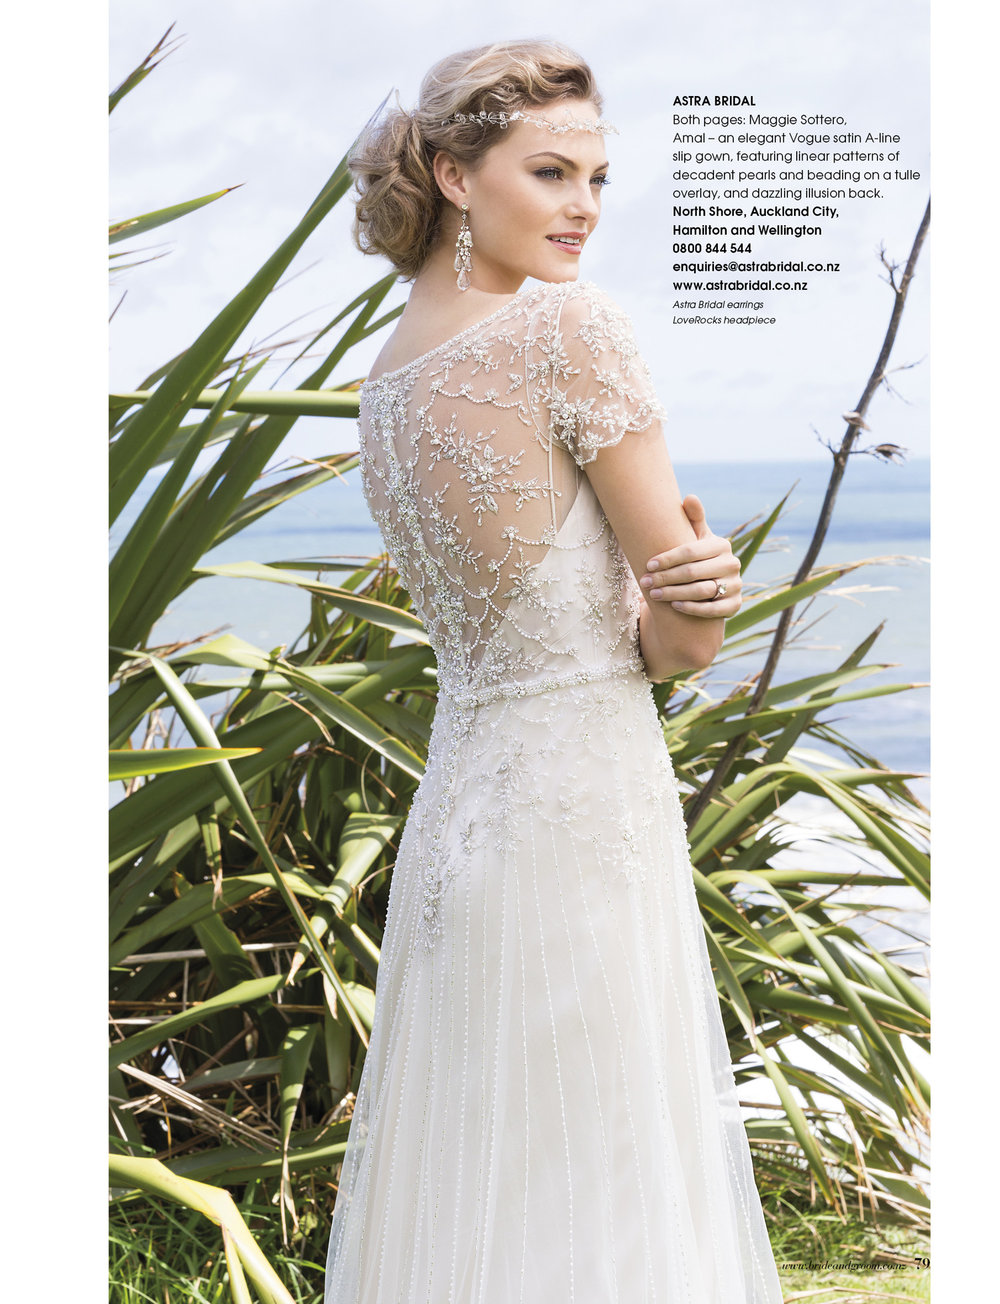 Maggie Sottero Amal | Issue 91 Bride and Groom Magazine | Available from Astra Bridal |